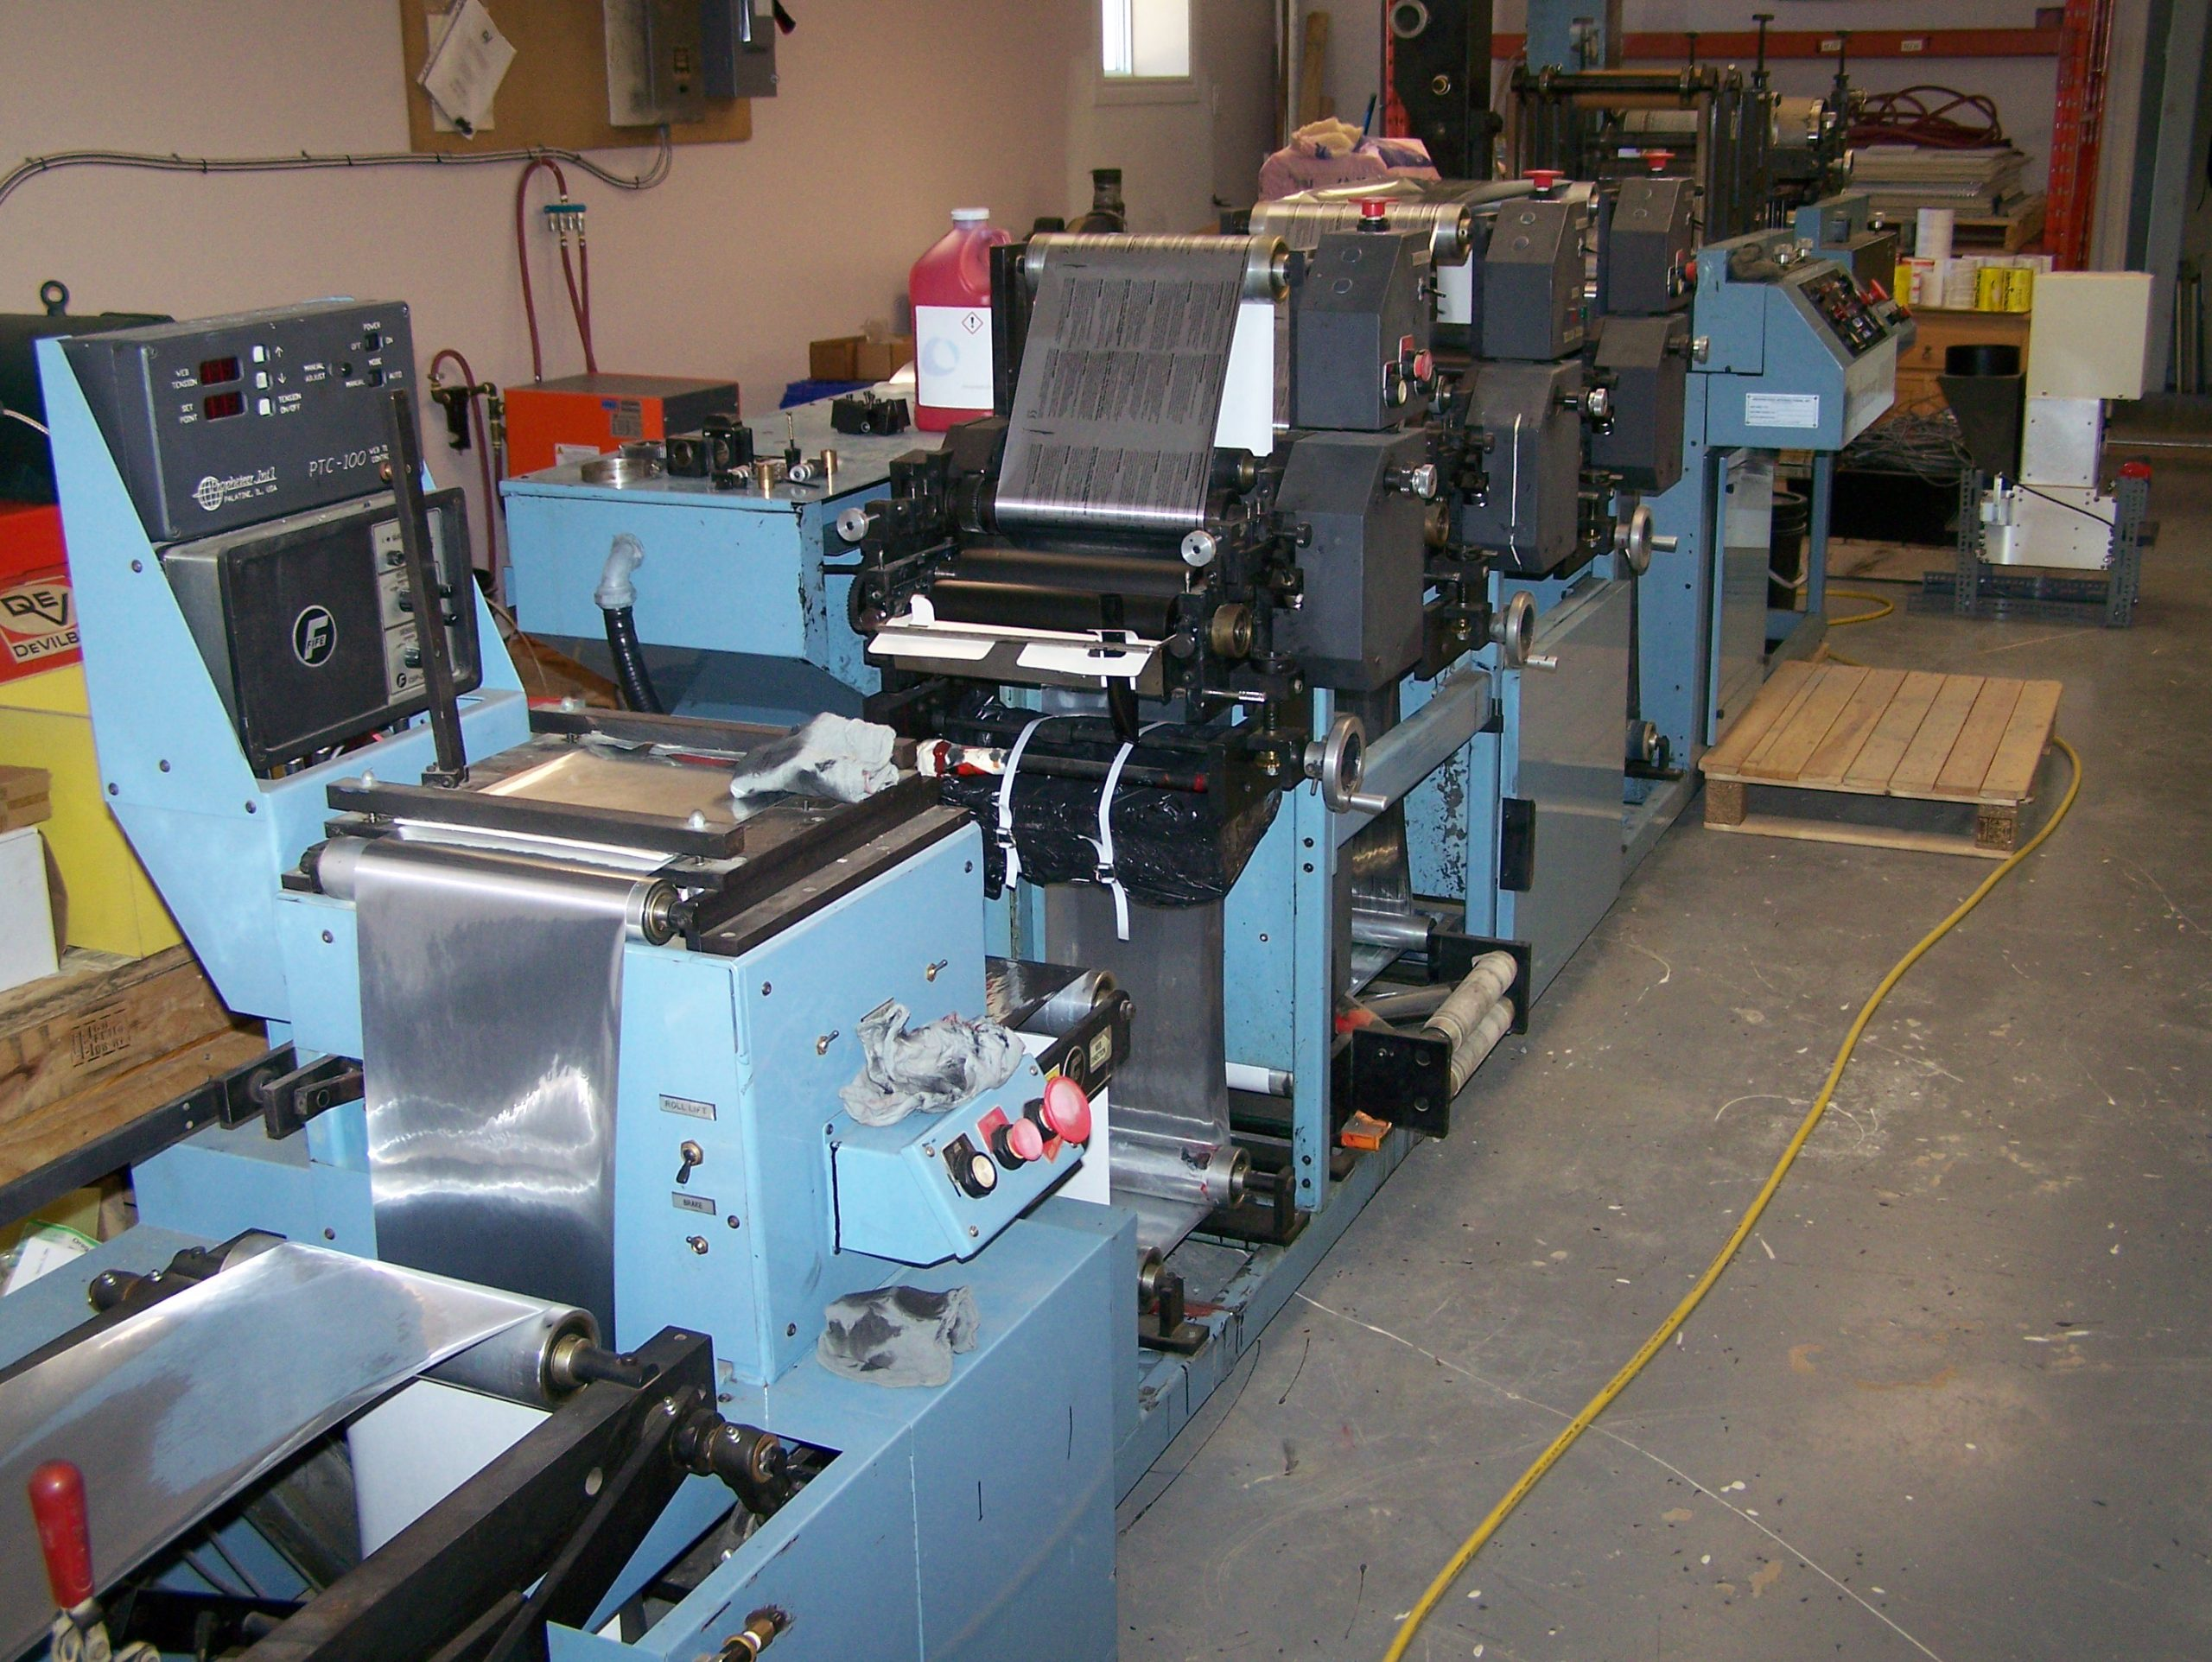 Propheteer 1000L - Used Flexo Printing Presses and Used Flexographic Equipment-0